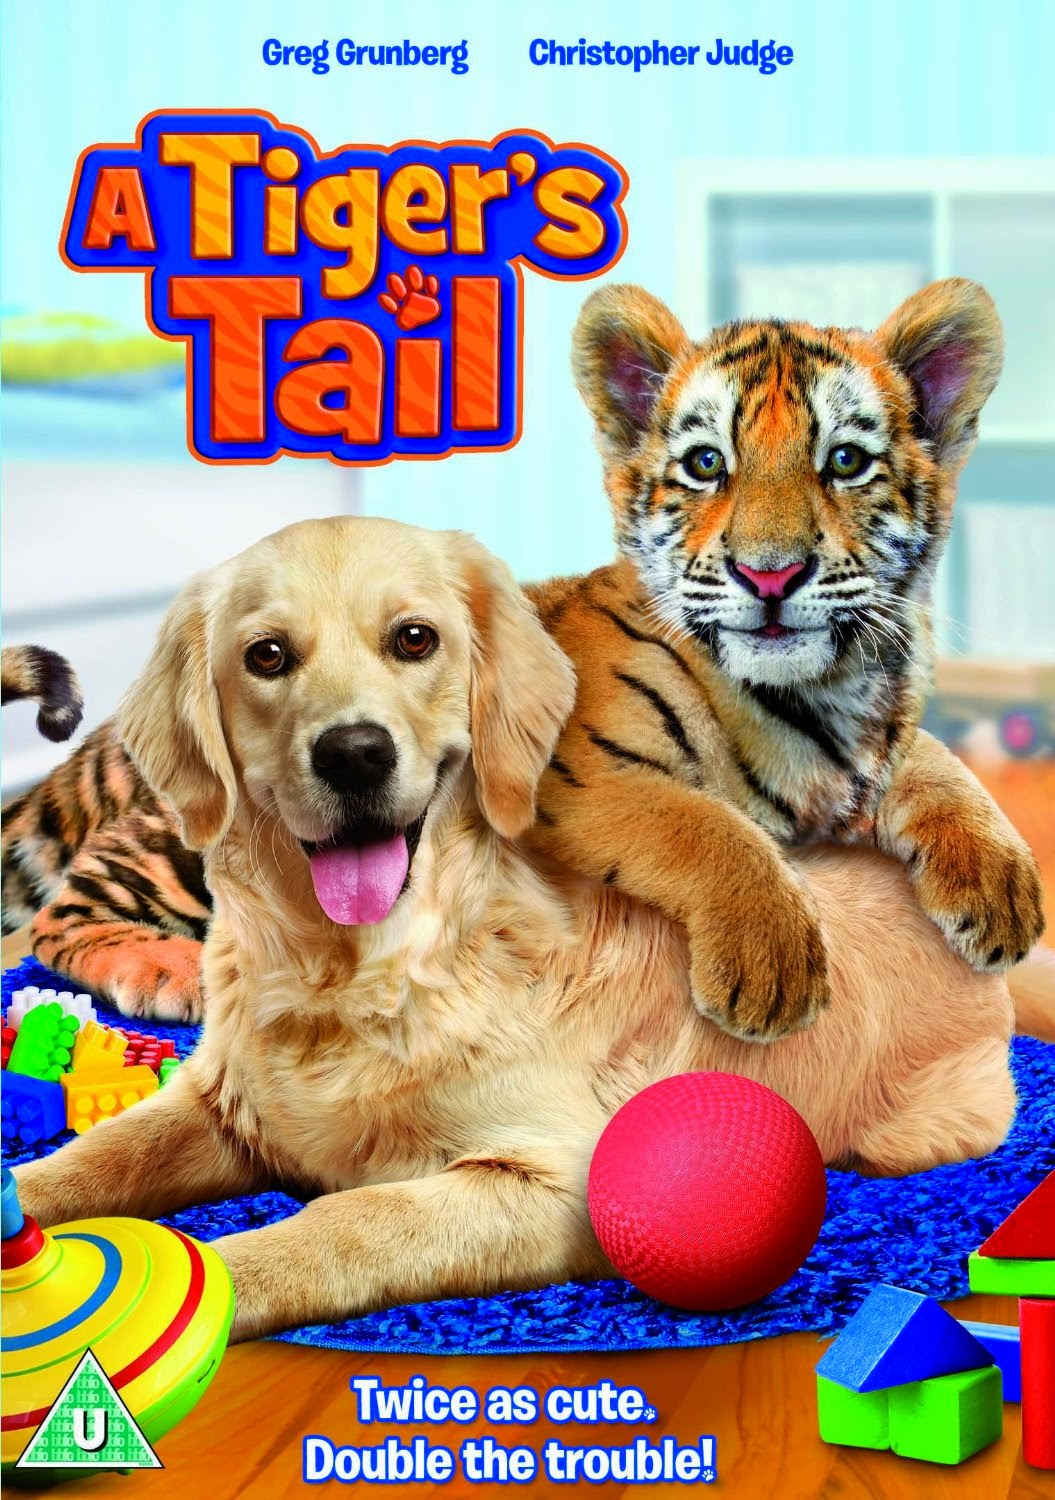 kids movie, tiger